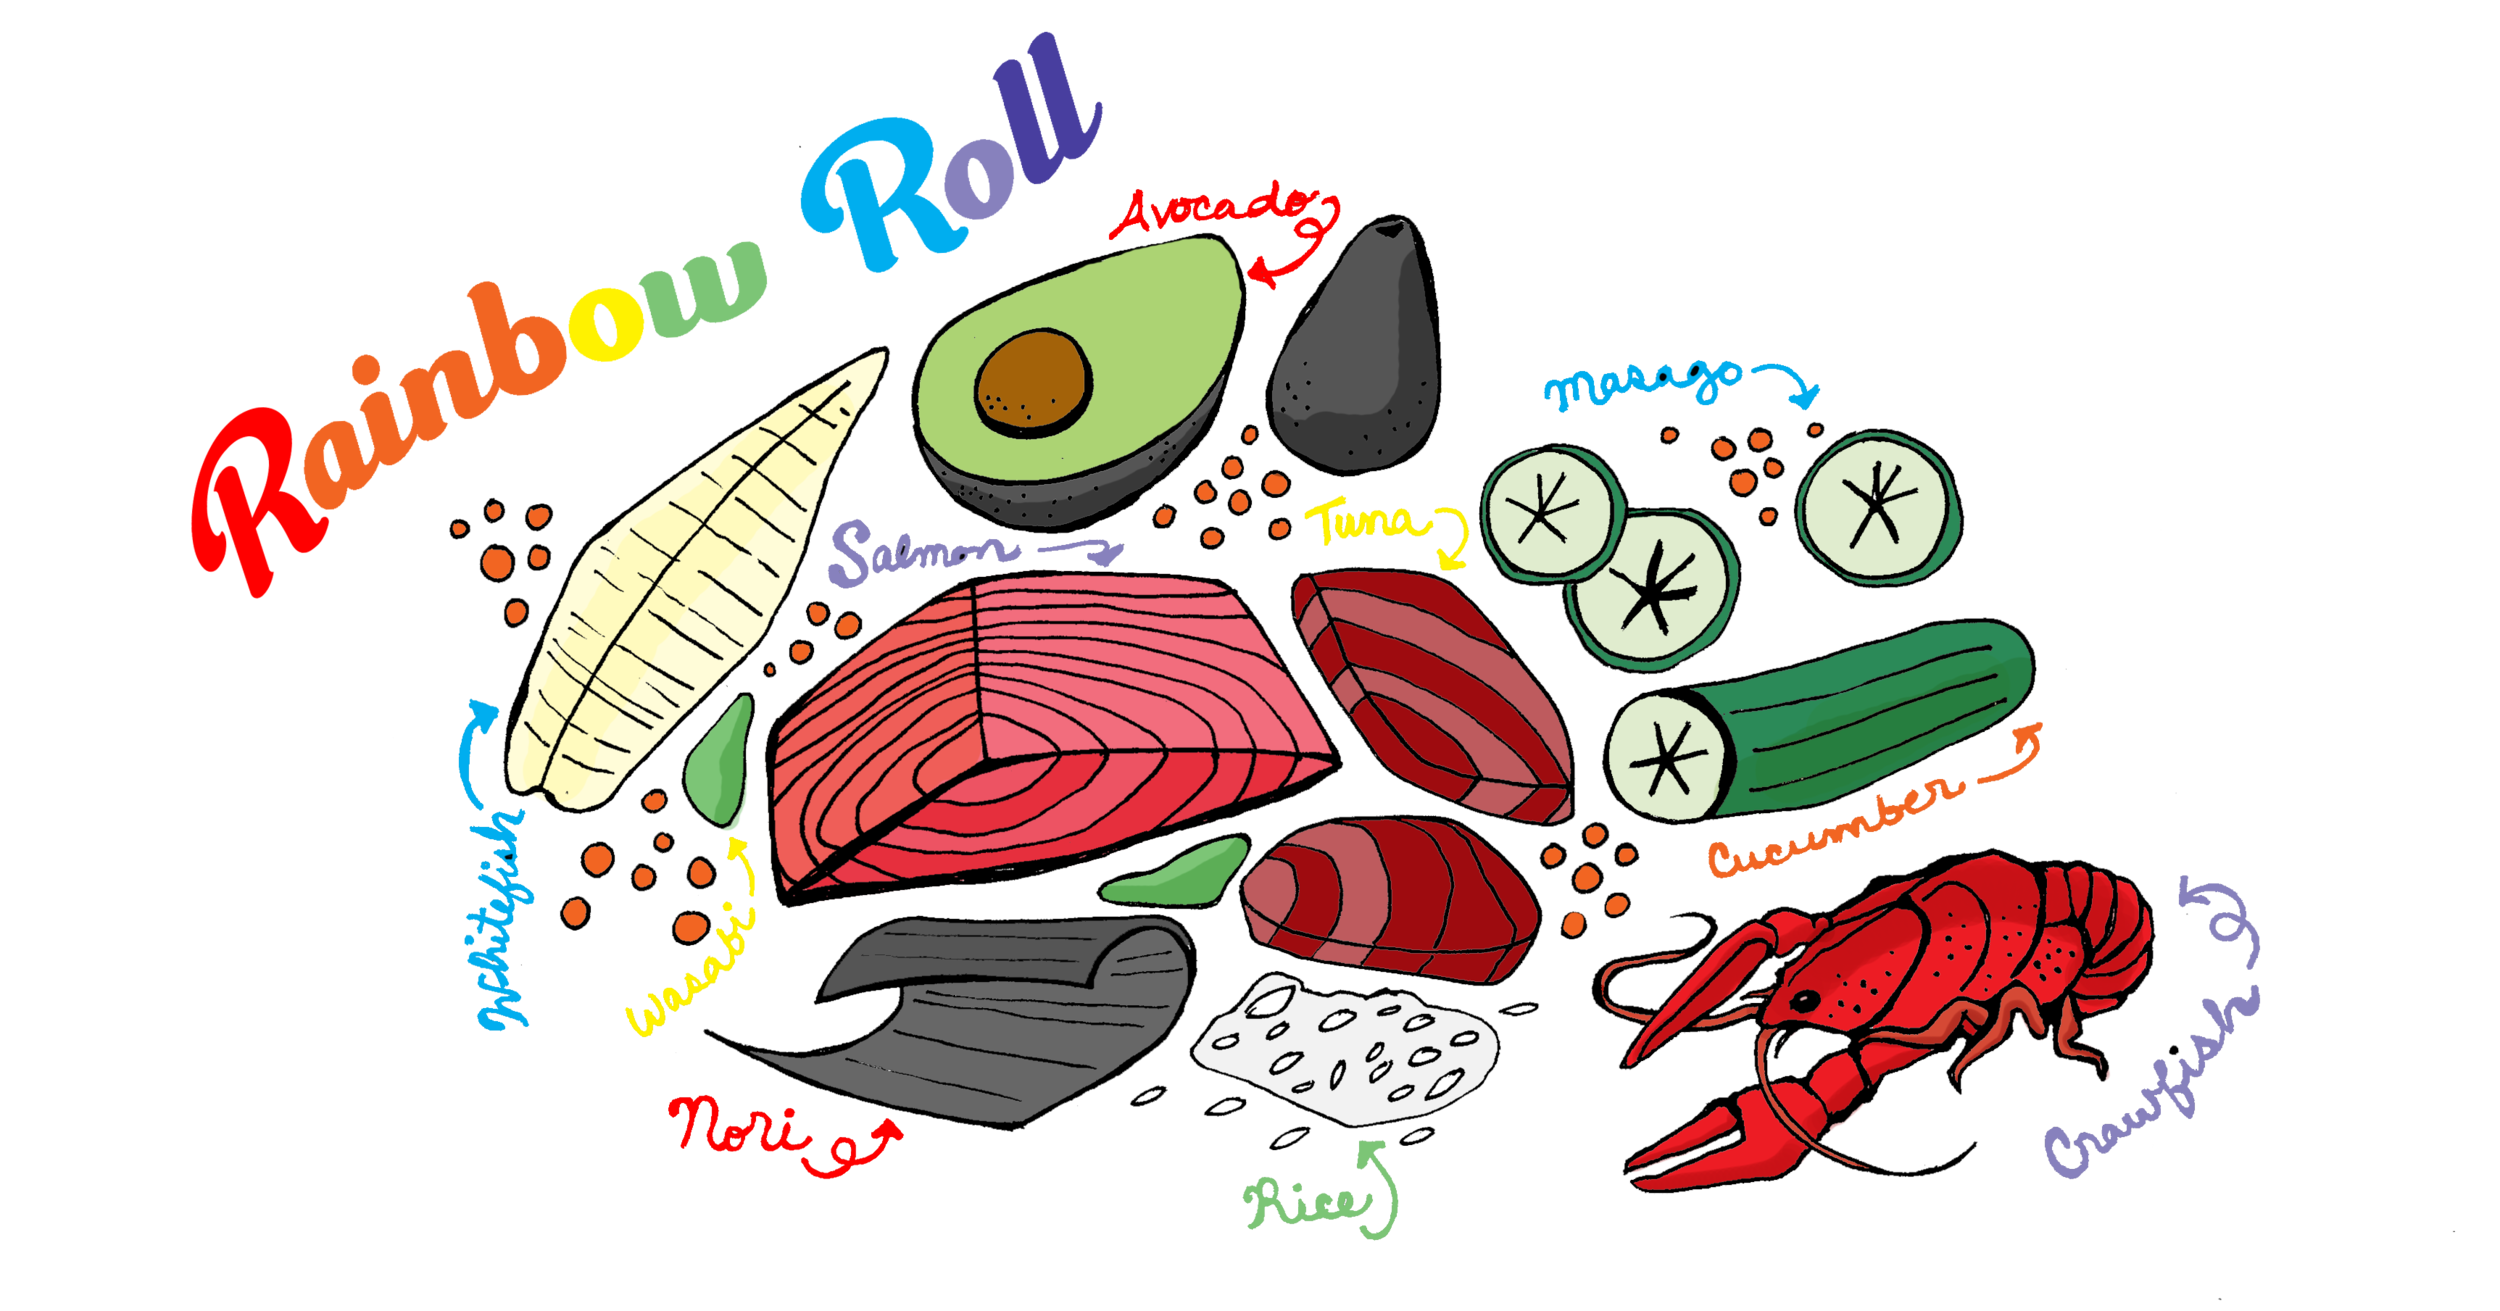 What goes into the Rainbow Roll (手綱寿司) …